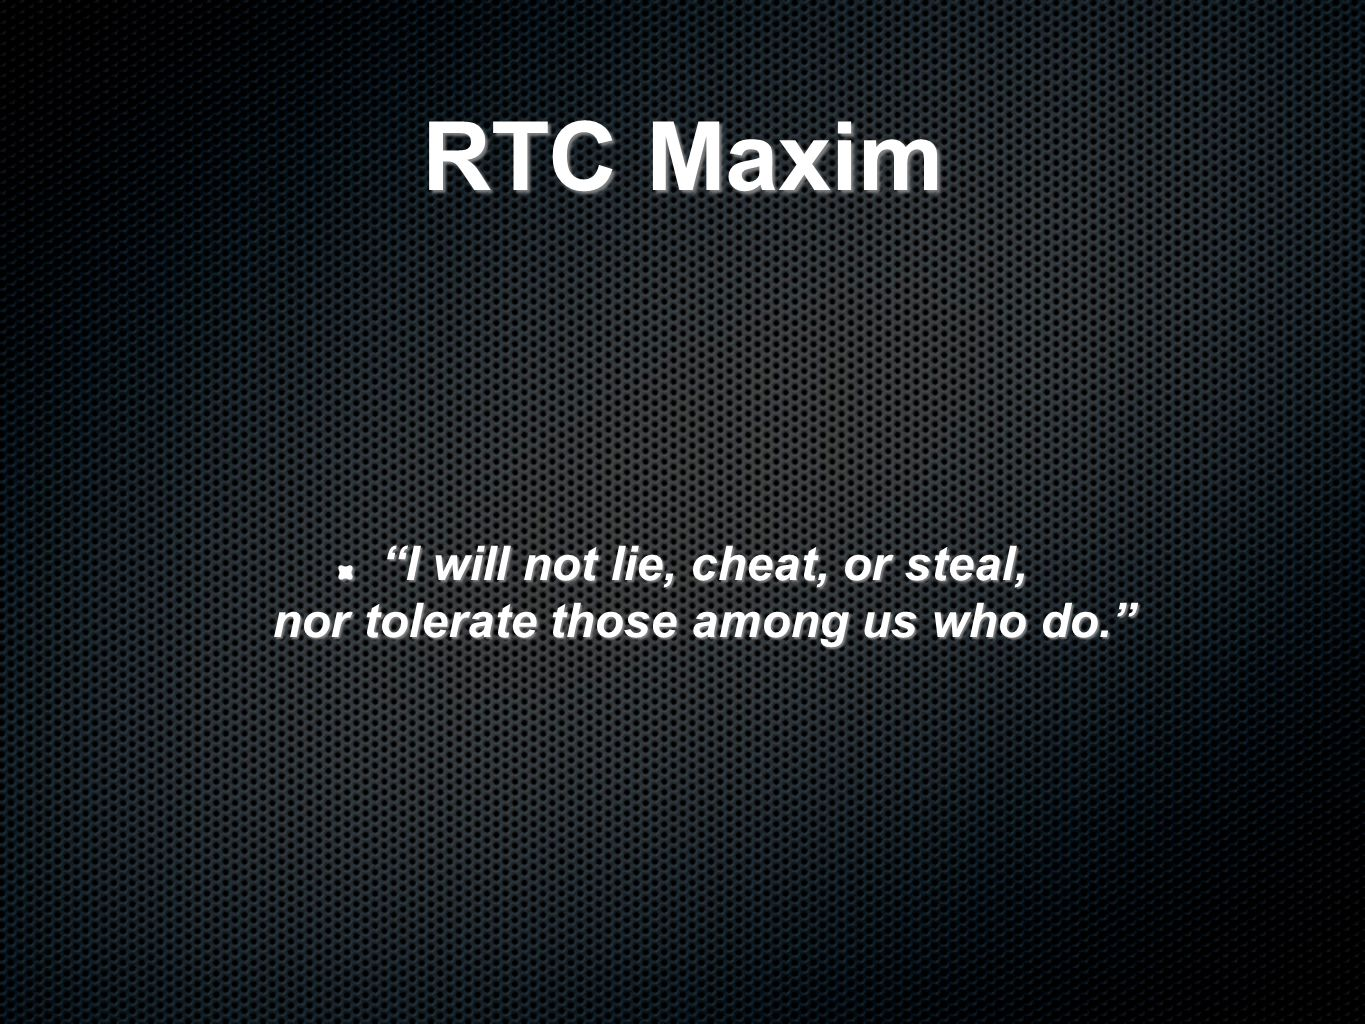 RTC Maxim I will not lie, cheat, or steal, nor tolerate those among us who do.